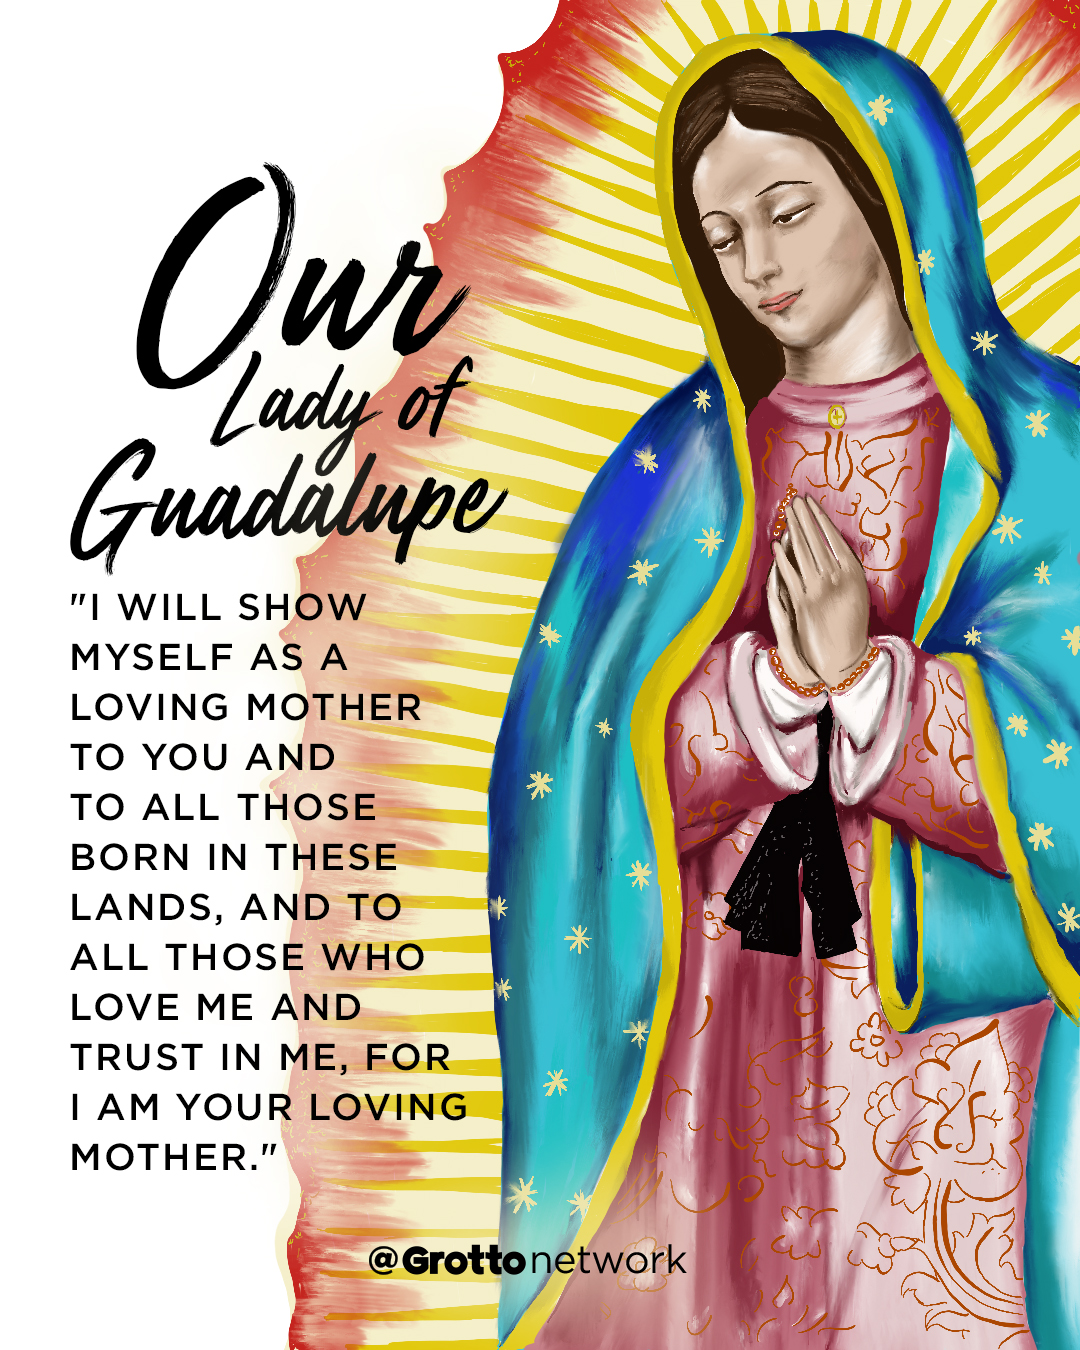 """Grotto illustration for the Feast of Our Lady of Guadalupe that reads, """"I will show myself as a loving mother to you and to all those born in these lands, and to all those who love me and trust in me, for I am your loving mother."""""""